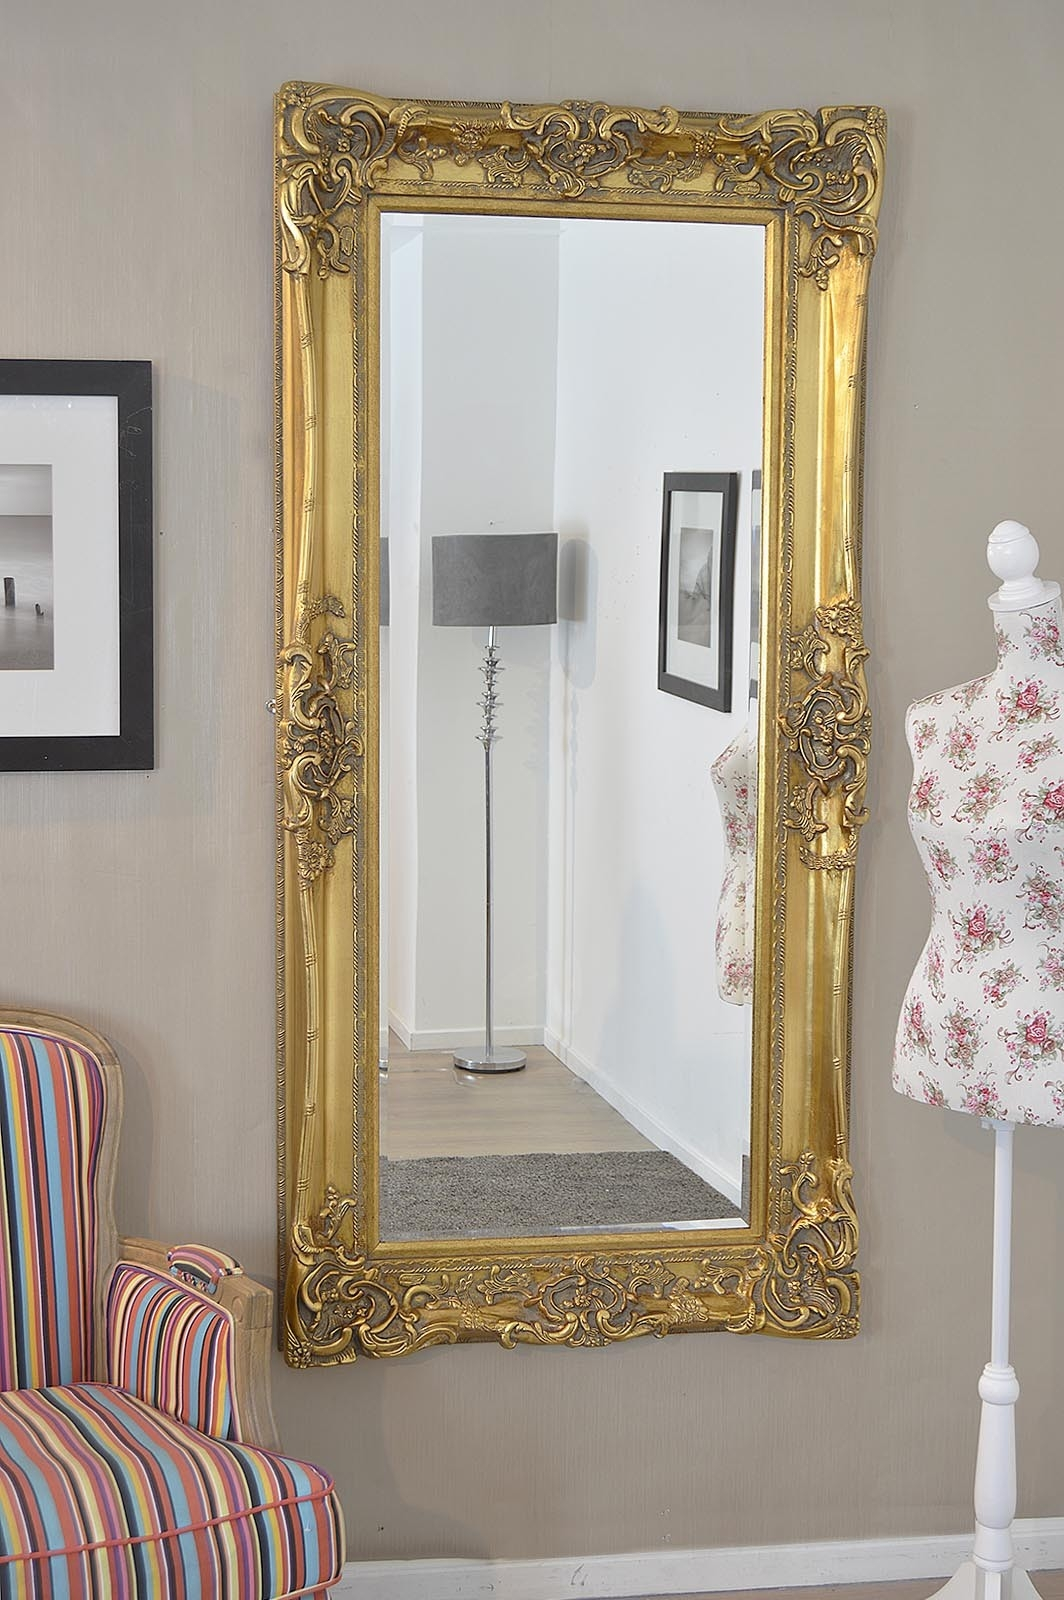 Frame Gold Antique Shab Chic Ornate Wall Mirror 6ft X 3ft 183 X Regarding Gold Shabby Chic Mirror (View 3 of 15)